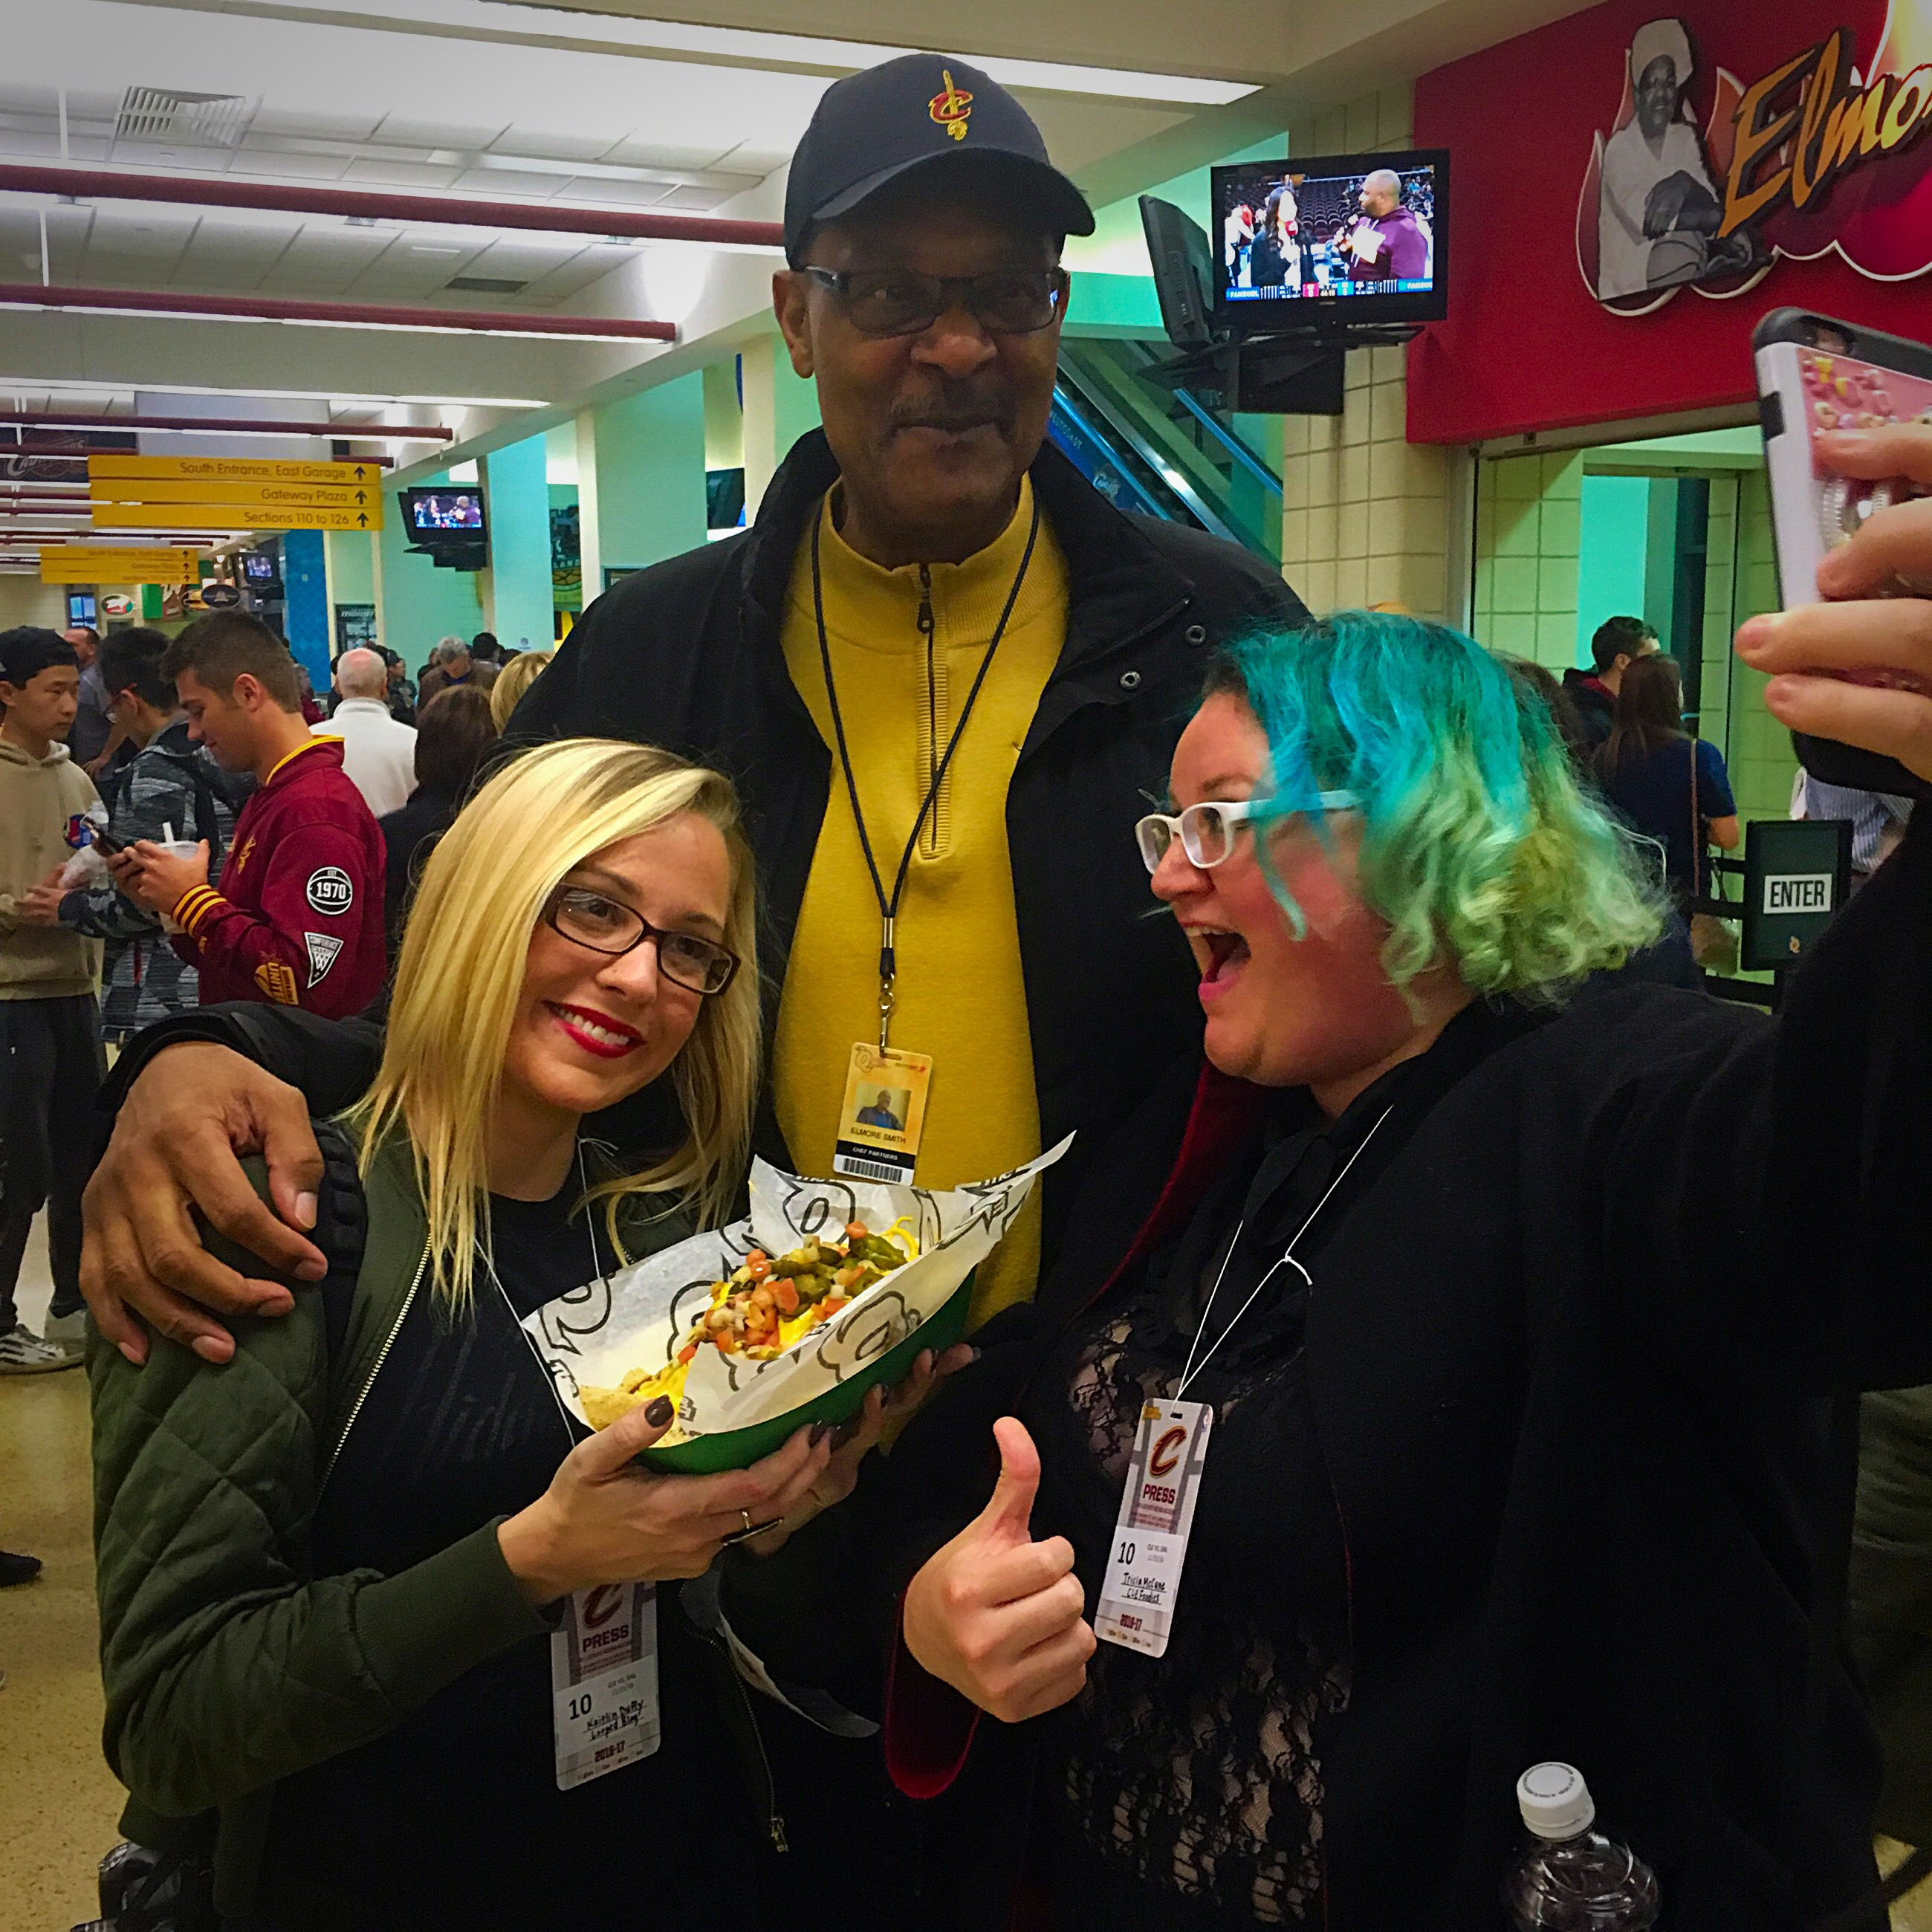 The Q Foods ing home to Cleveland for CavsEatsloop